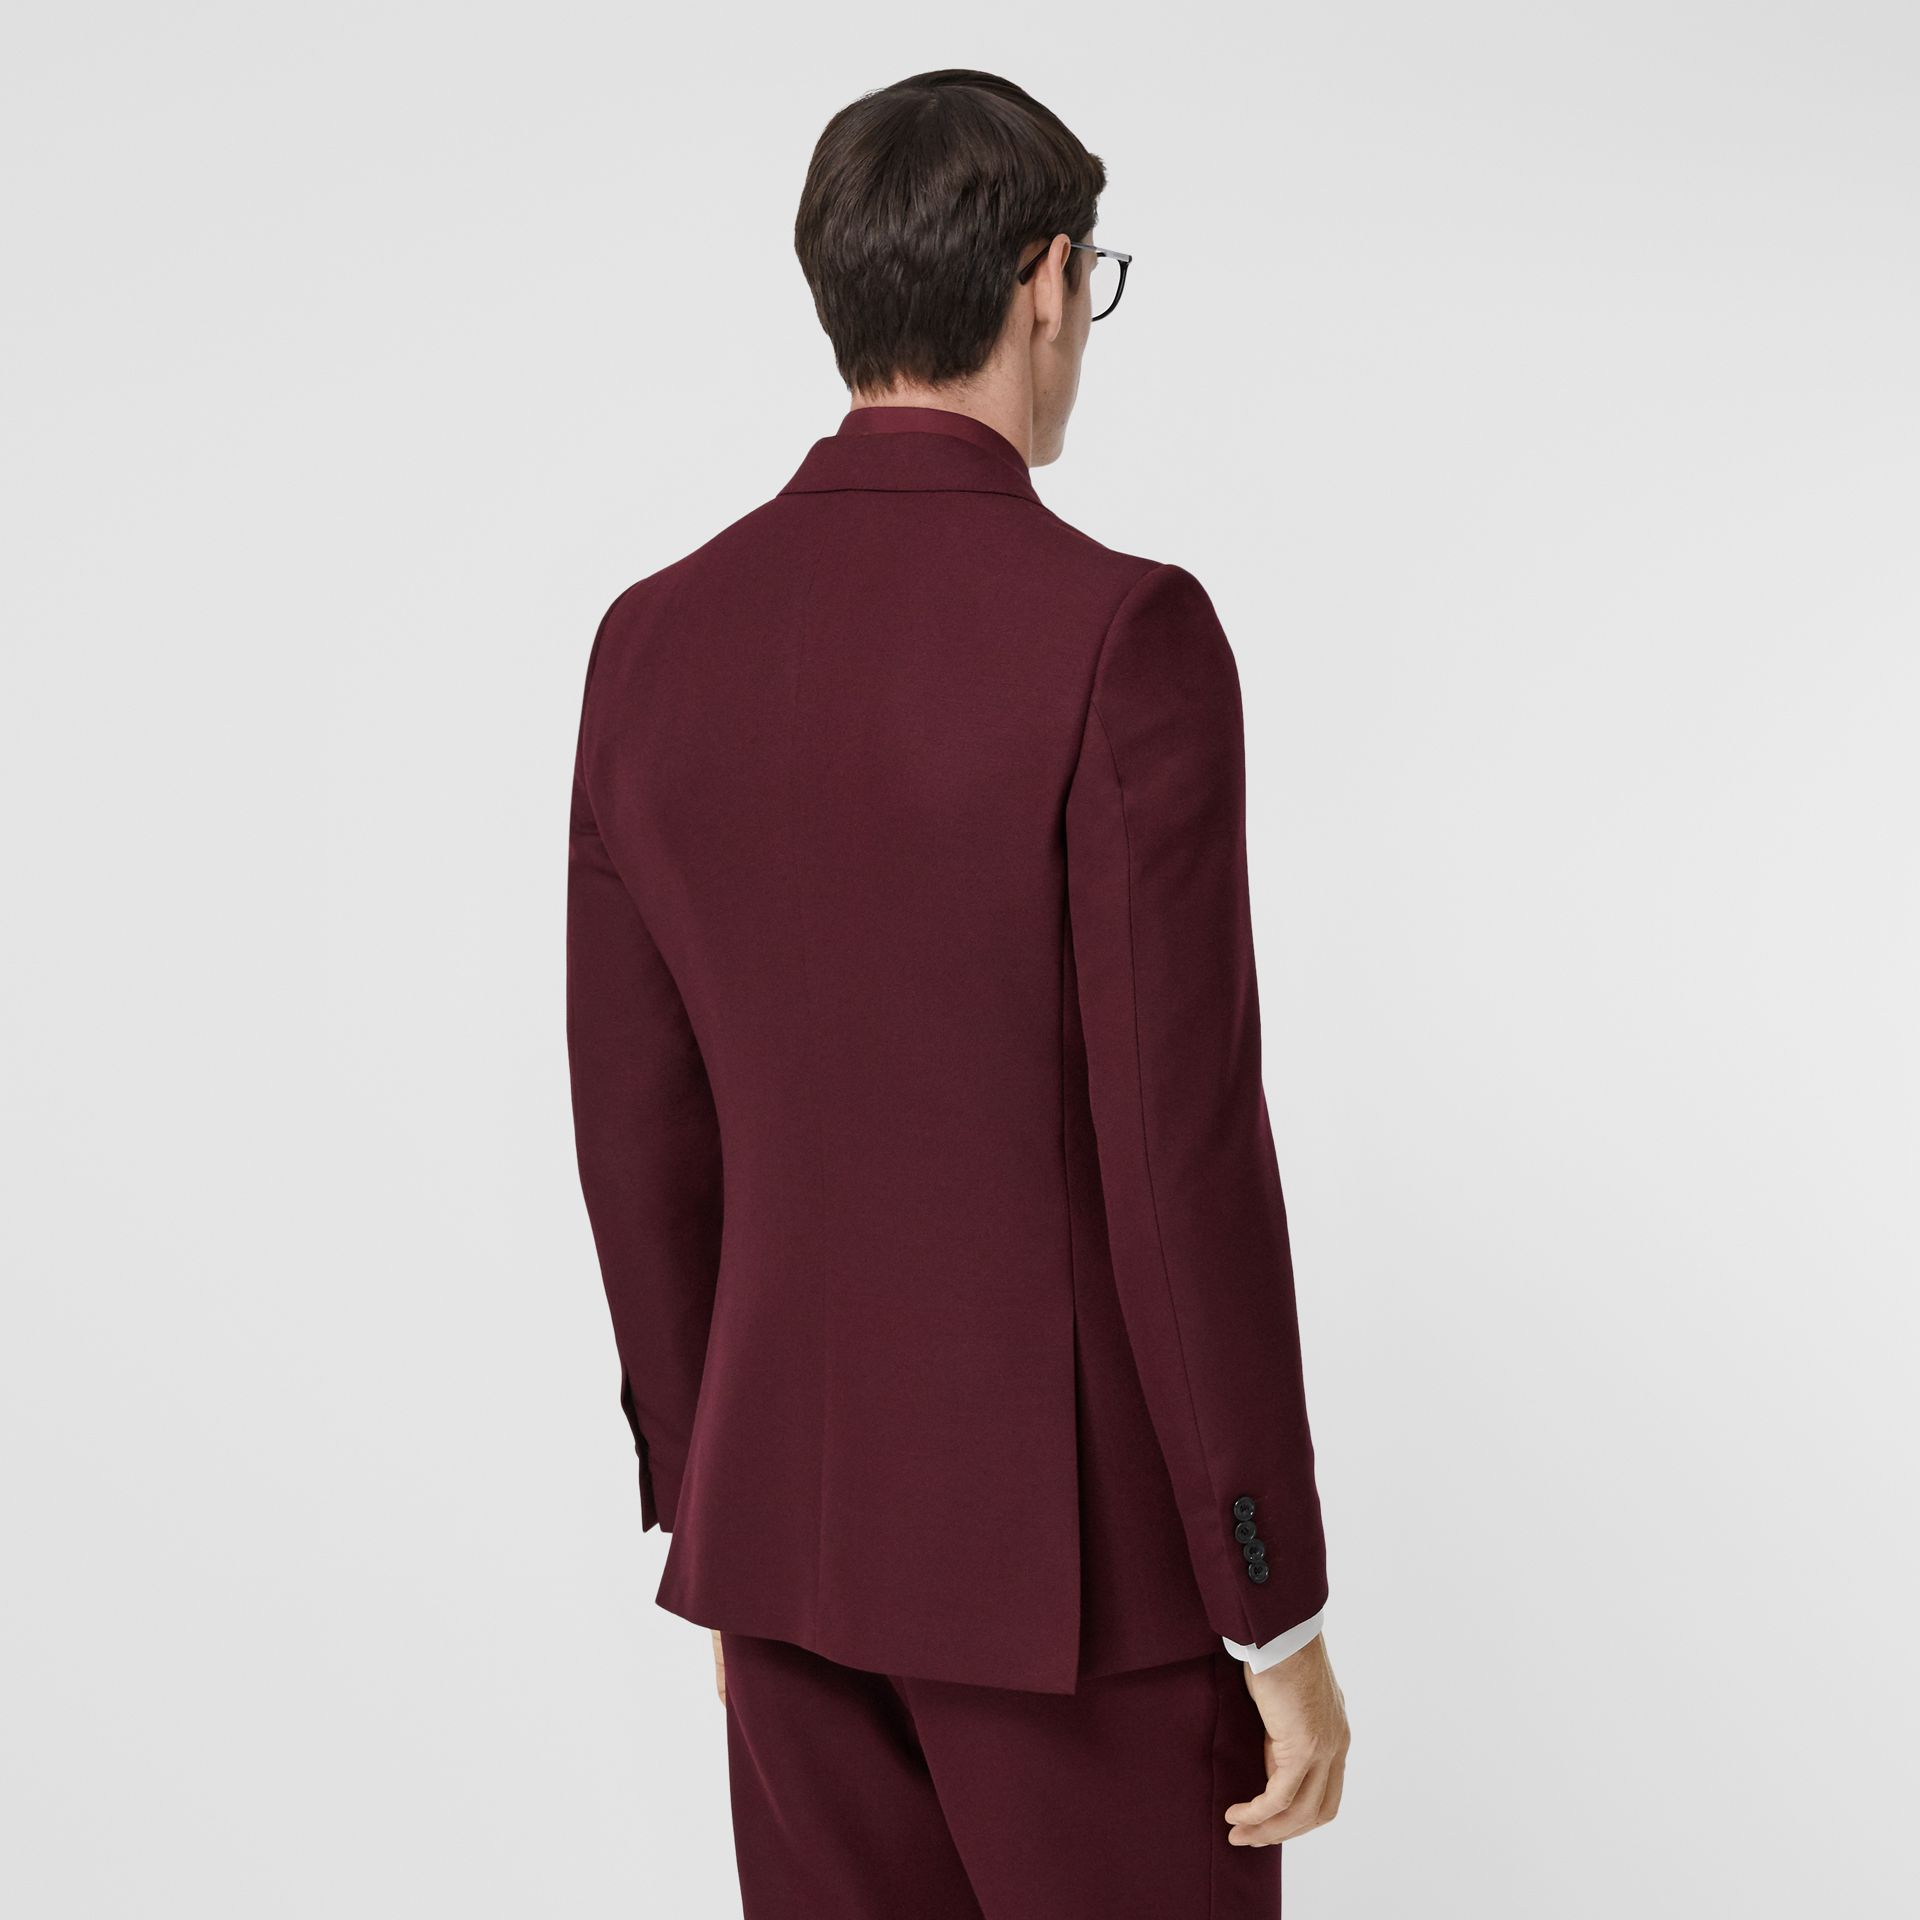 English Fit Wool Mohair Tailored Jacket in Deep Burgundy - Men | Burberry United States - gallery image 2